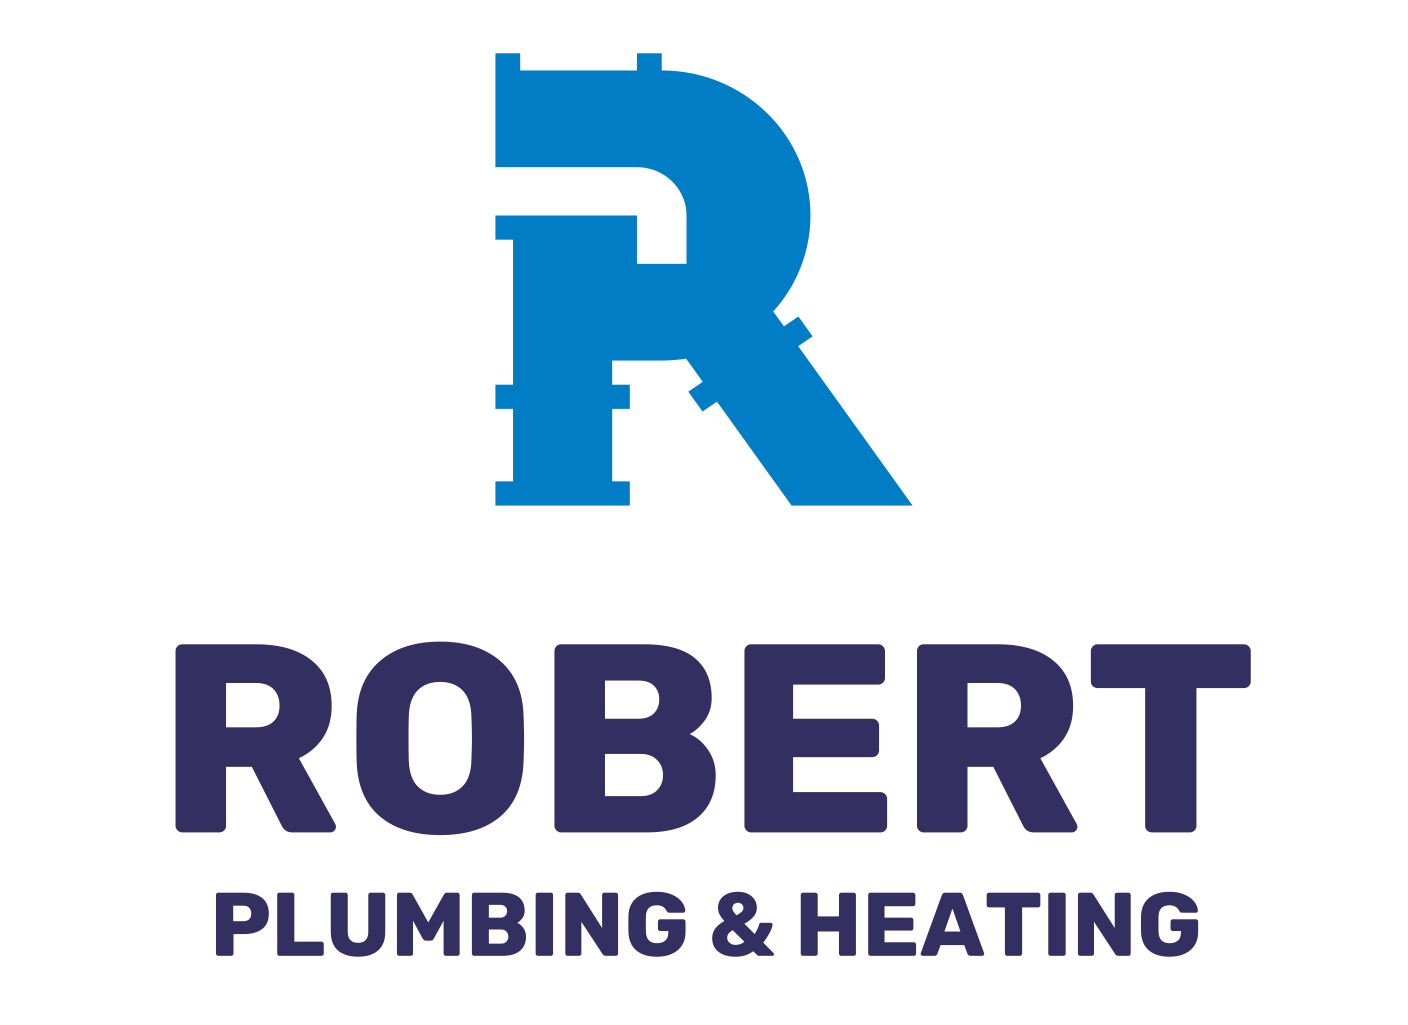 Robert Plumbing and Heating